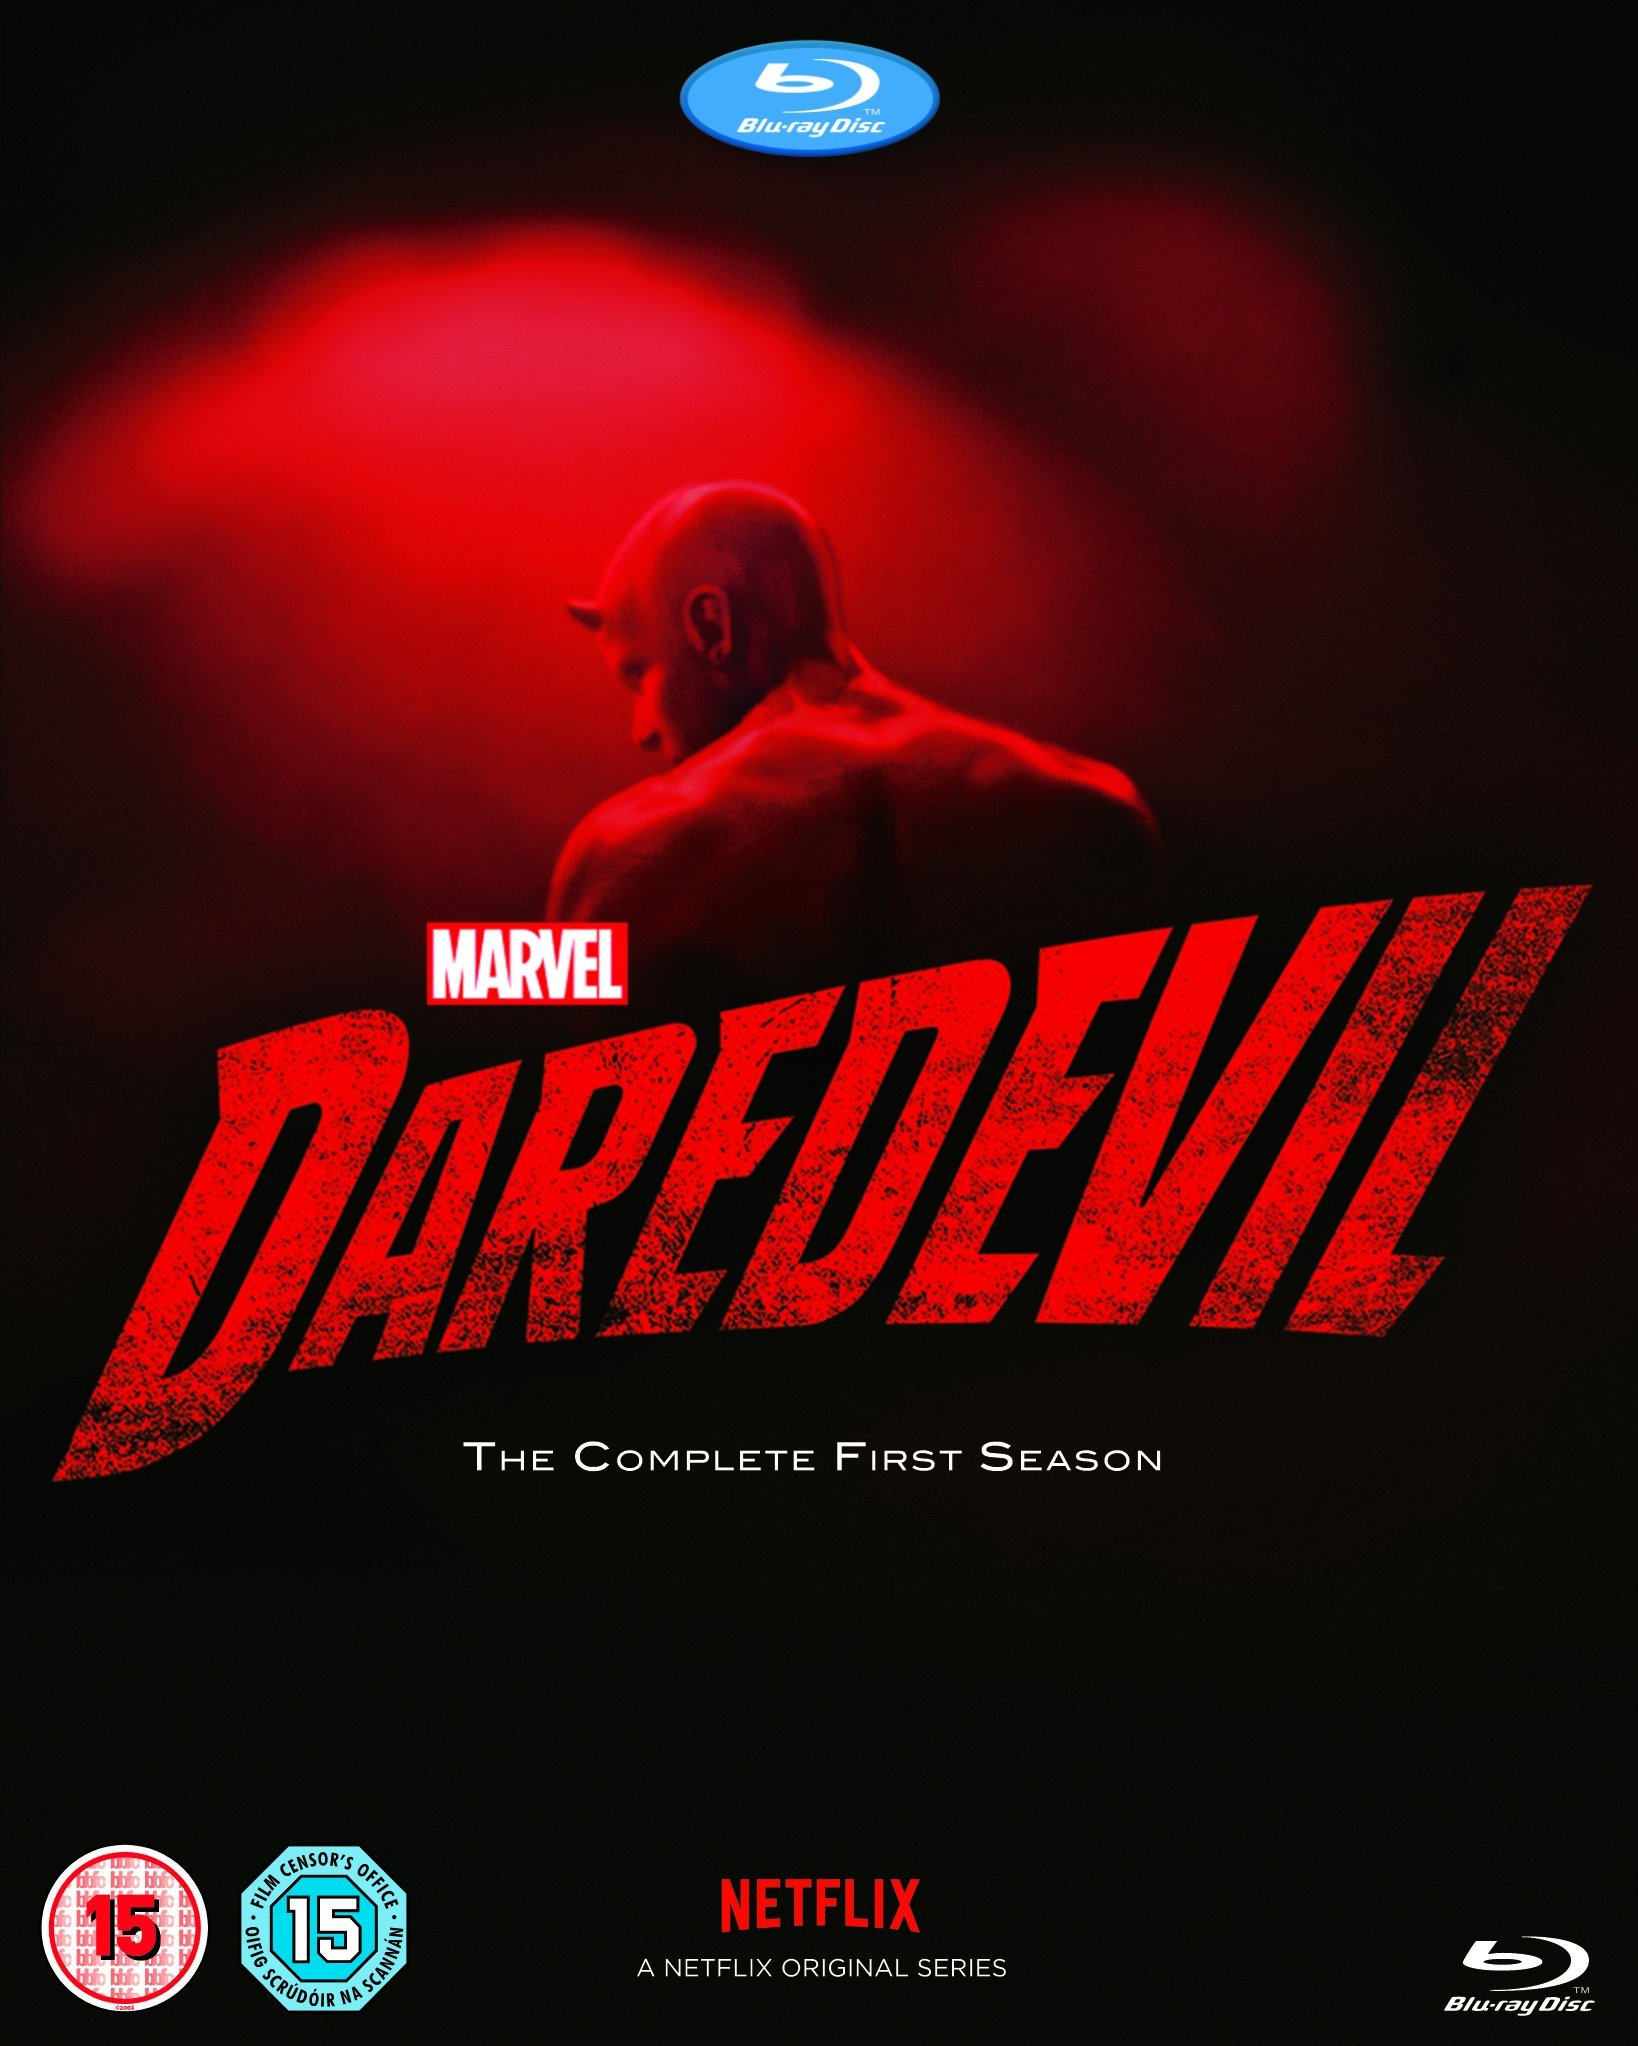 Marvel's Daredevil - Season 1 by Walt Disney Studios HE